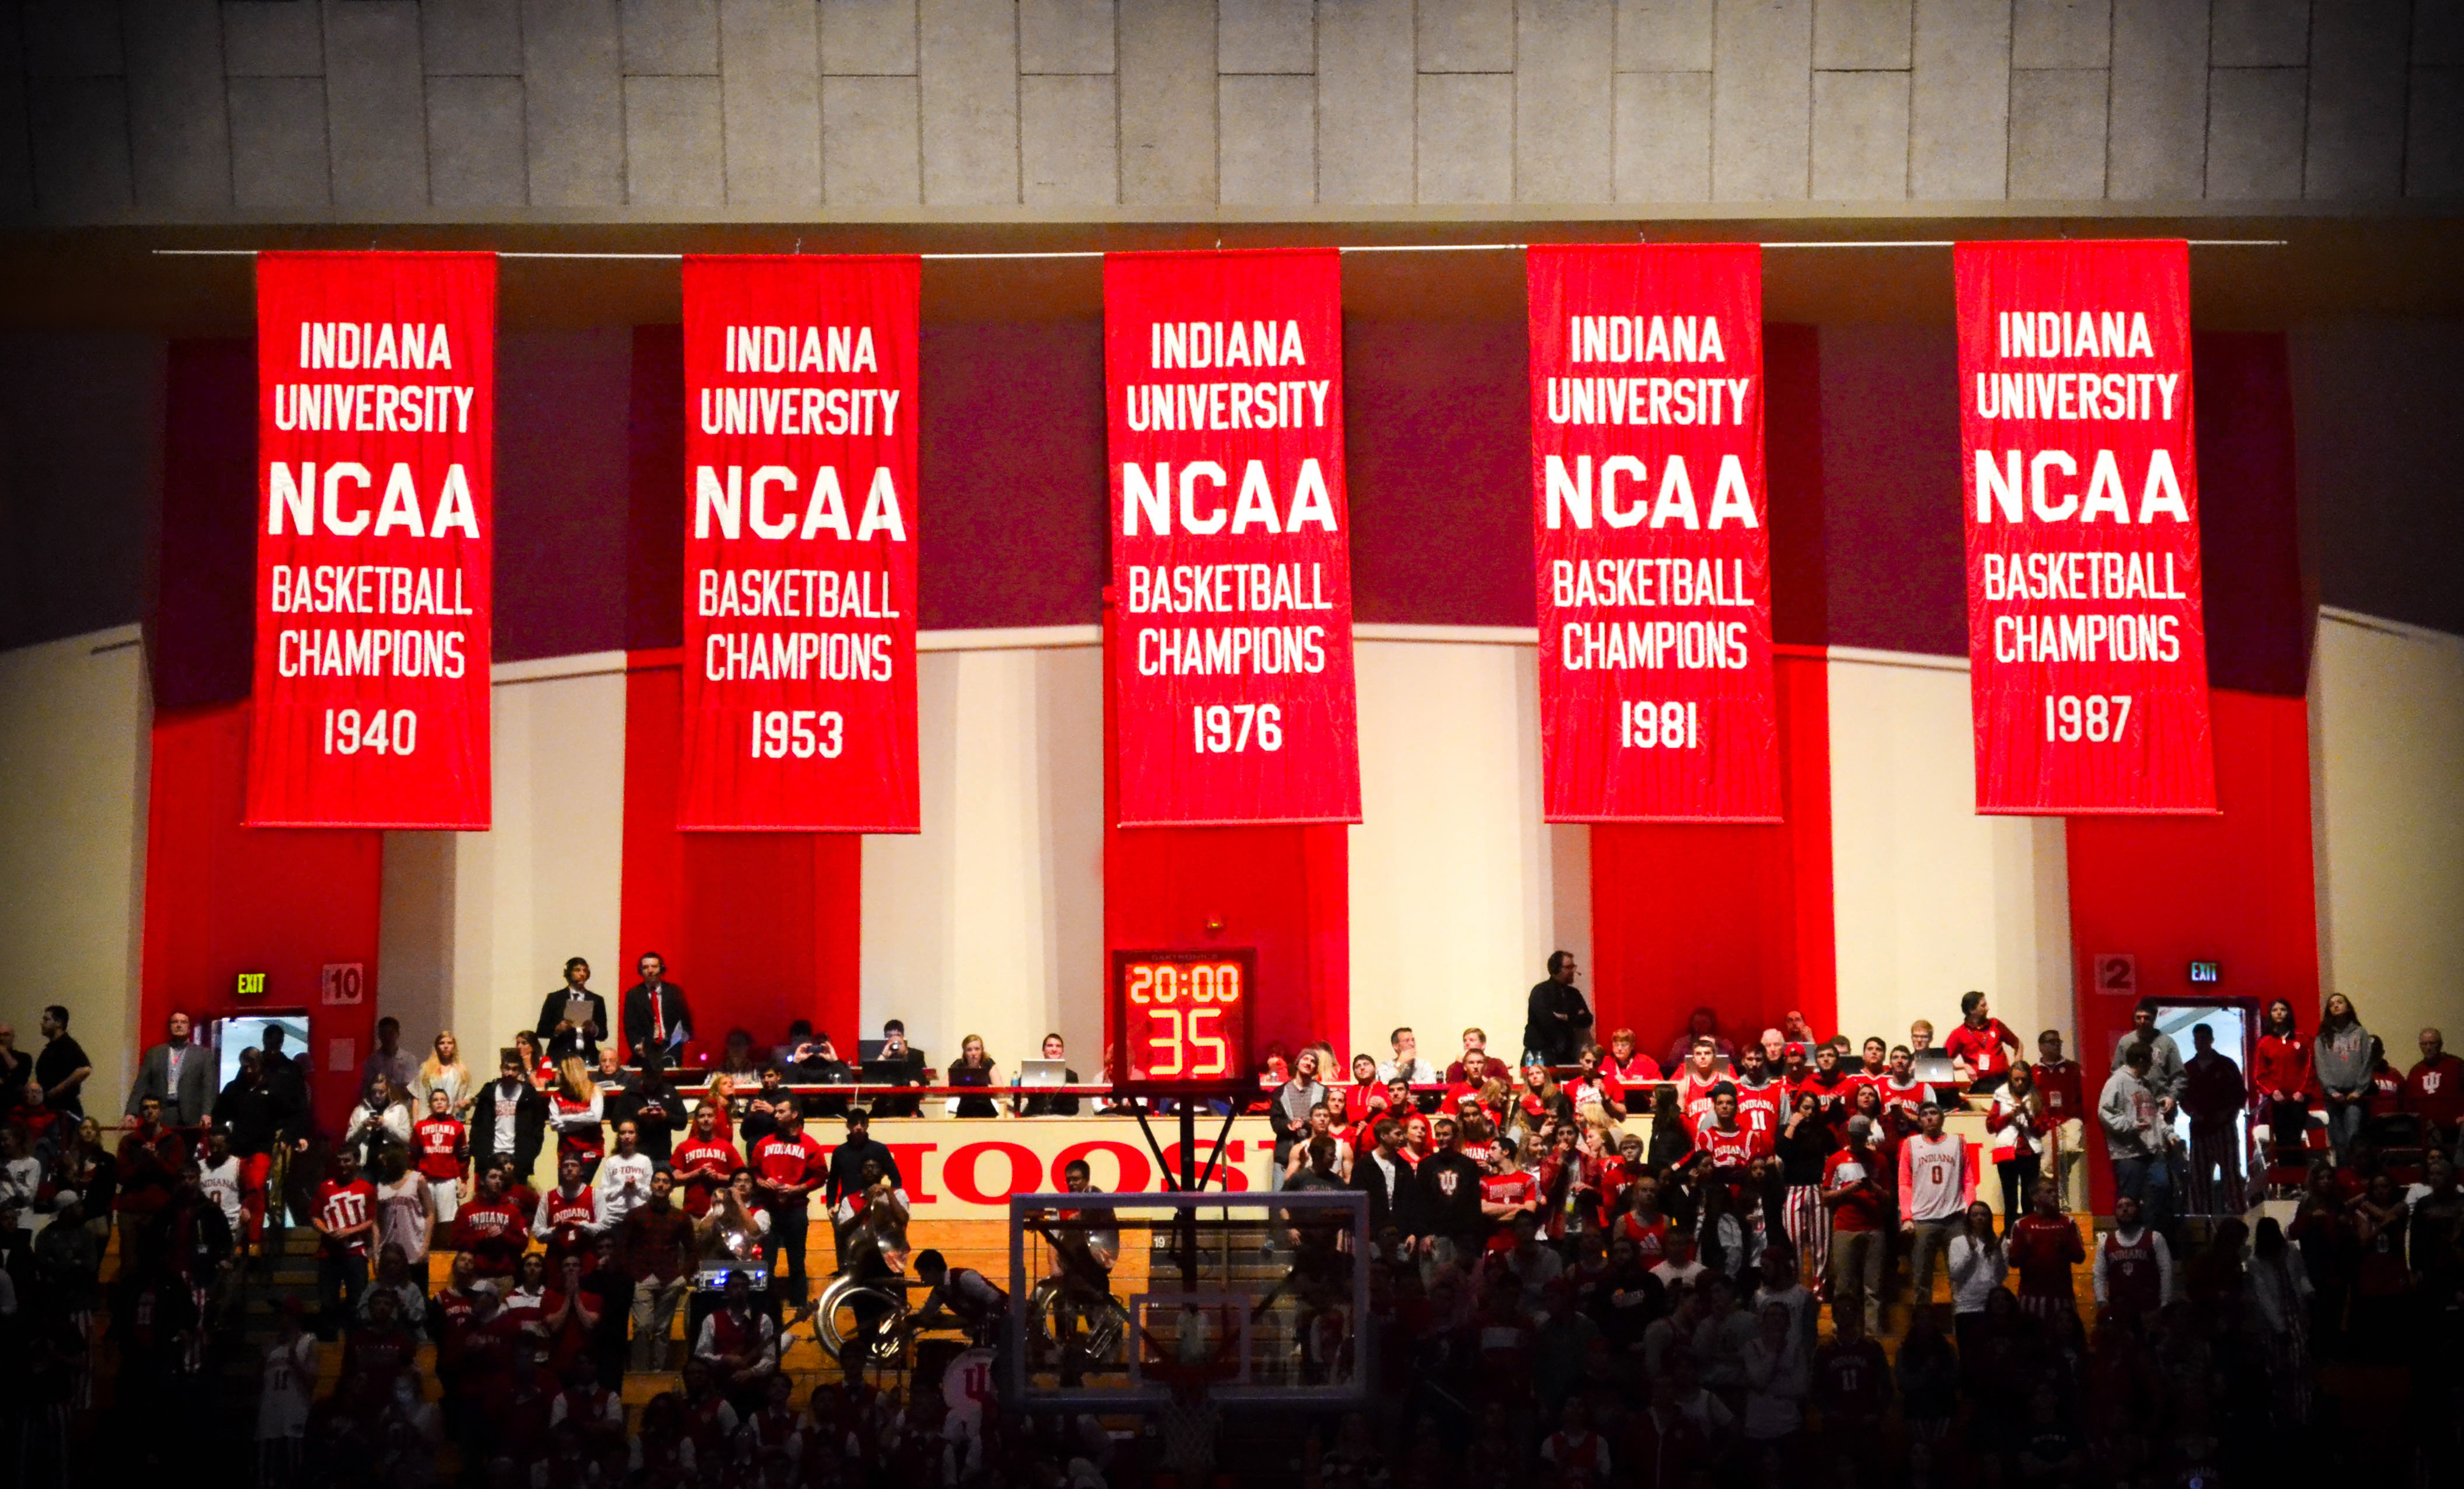 Indiana Hoosiers Basketball National Champions Banners at Assembly Hall in Bloomington, Indiana